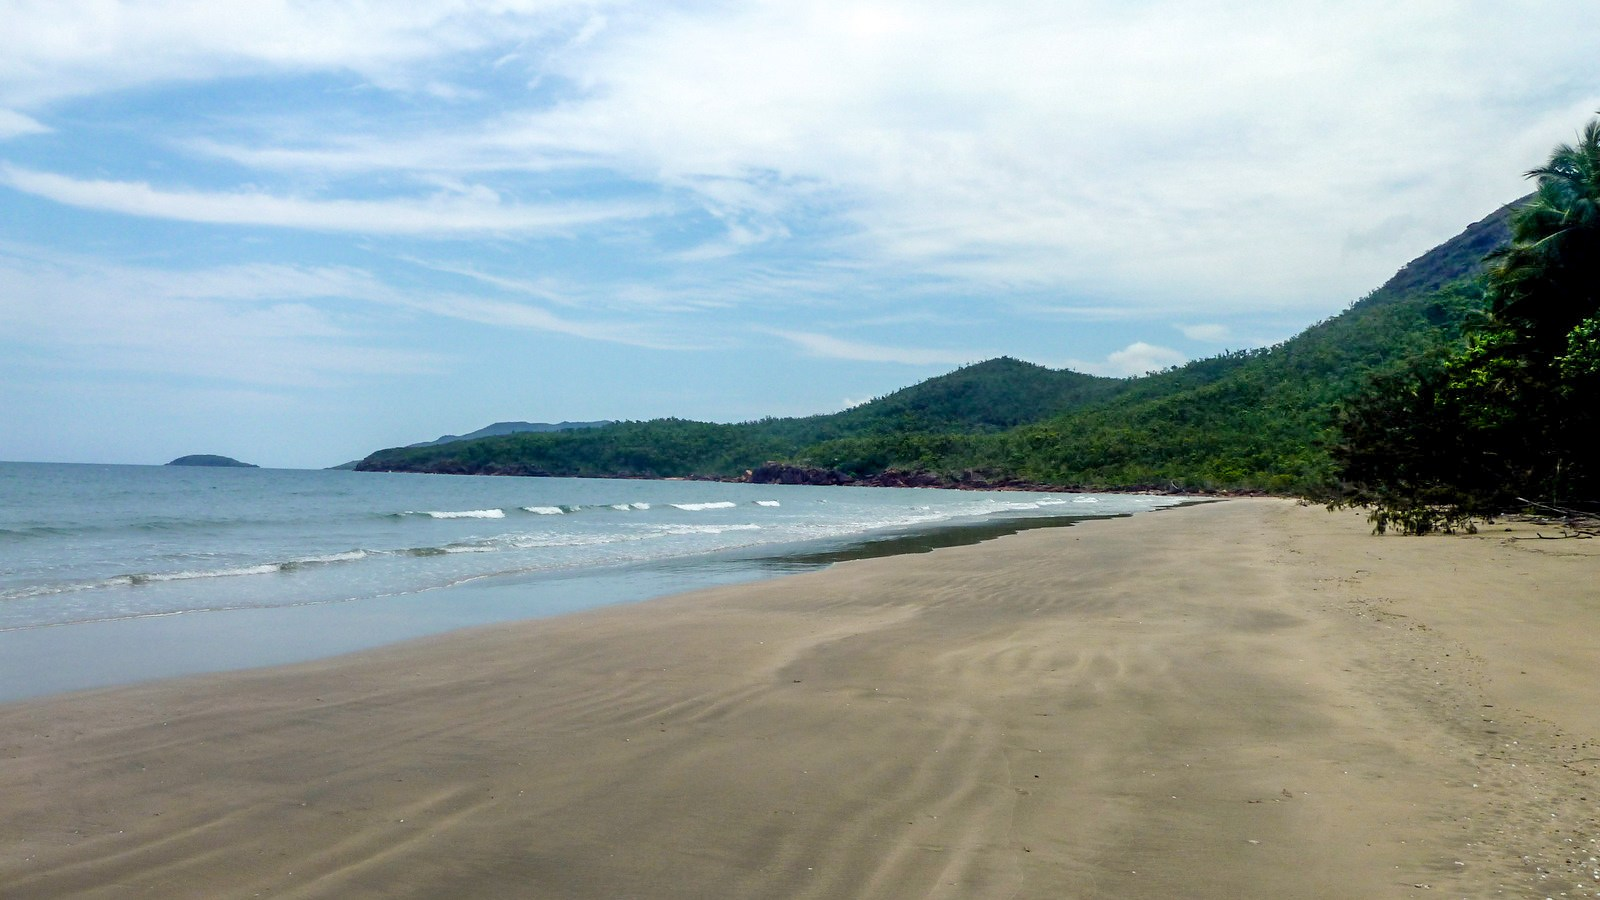 this is a photo of a sandy beach of hinchinbrook island